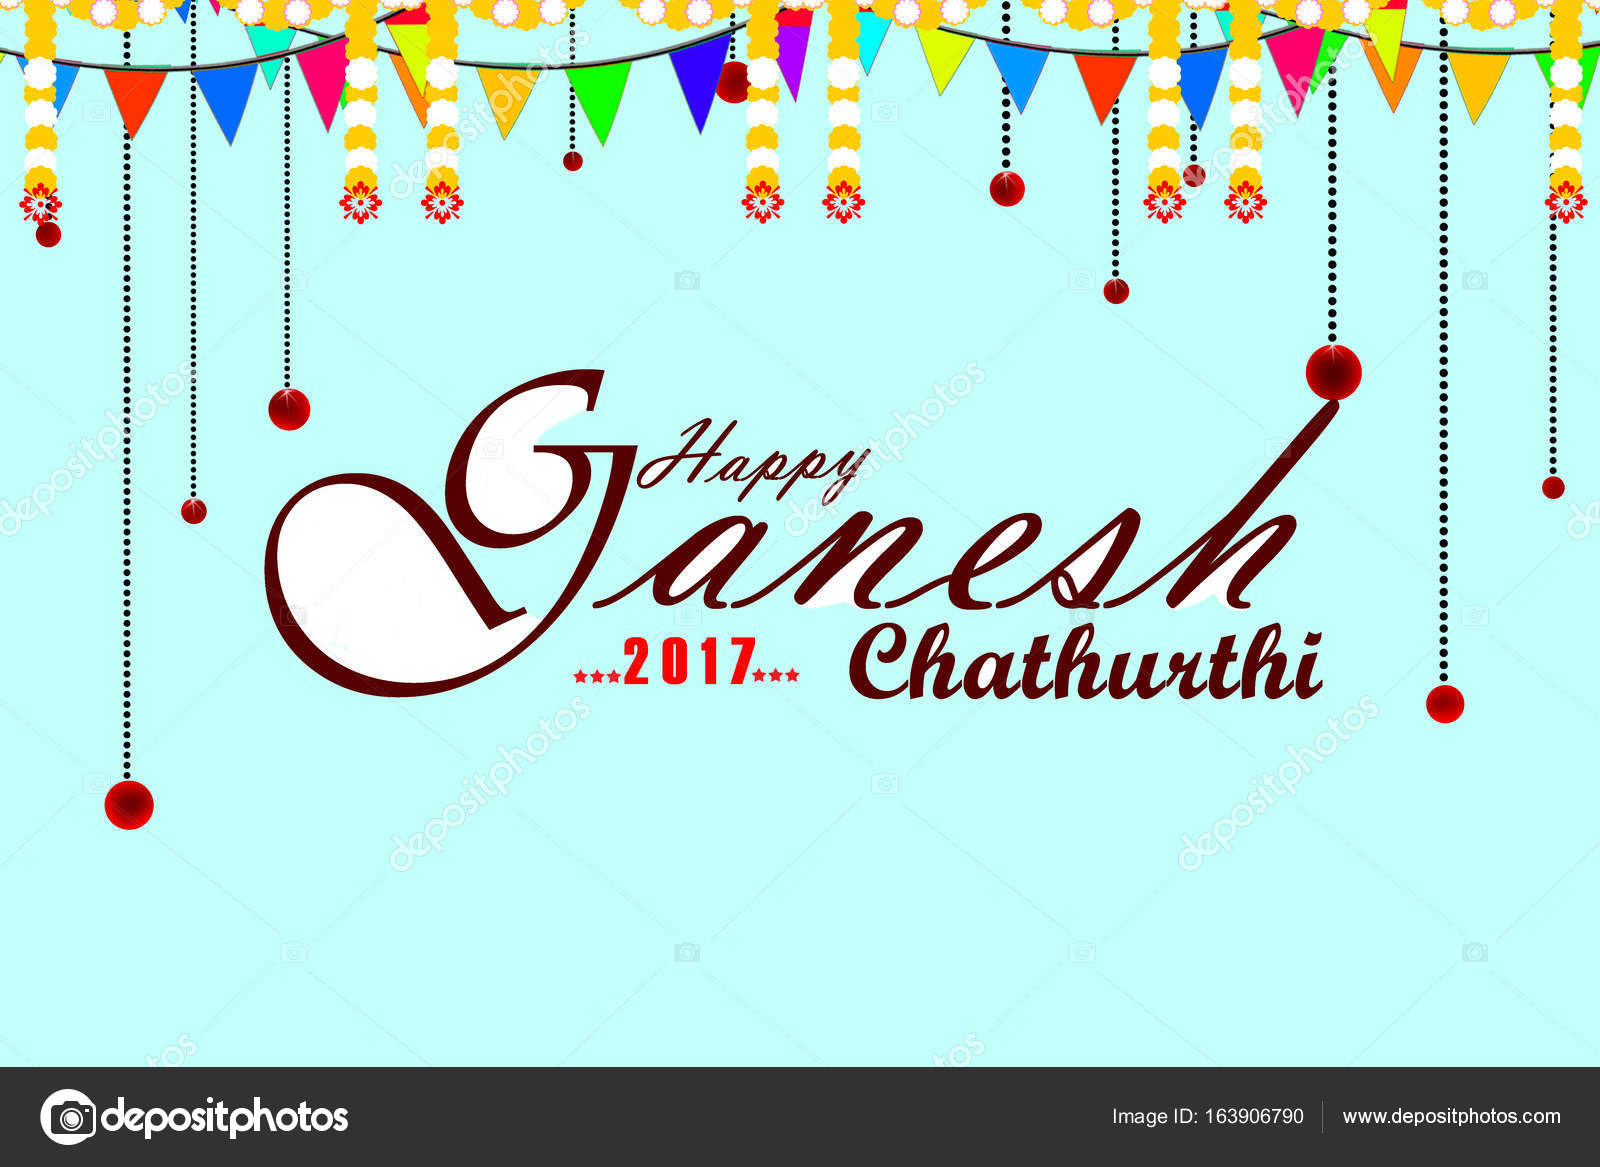 Happy ganesh chaturthi greeting card stock photo avsprem 163906790 happy ganesh chaturthi greeting card stock photo m4hsunfo